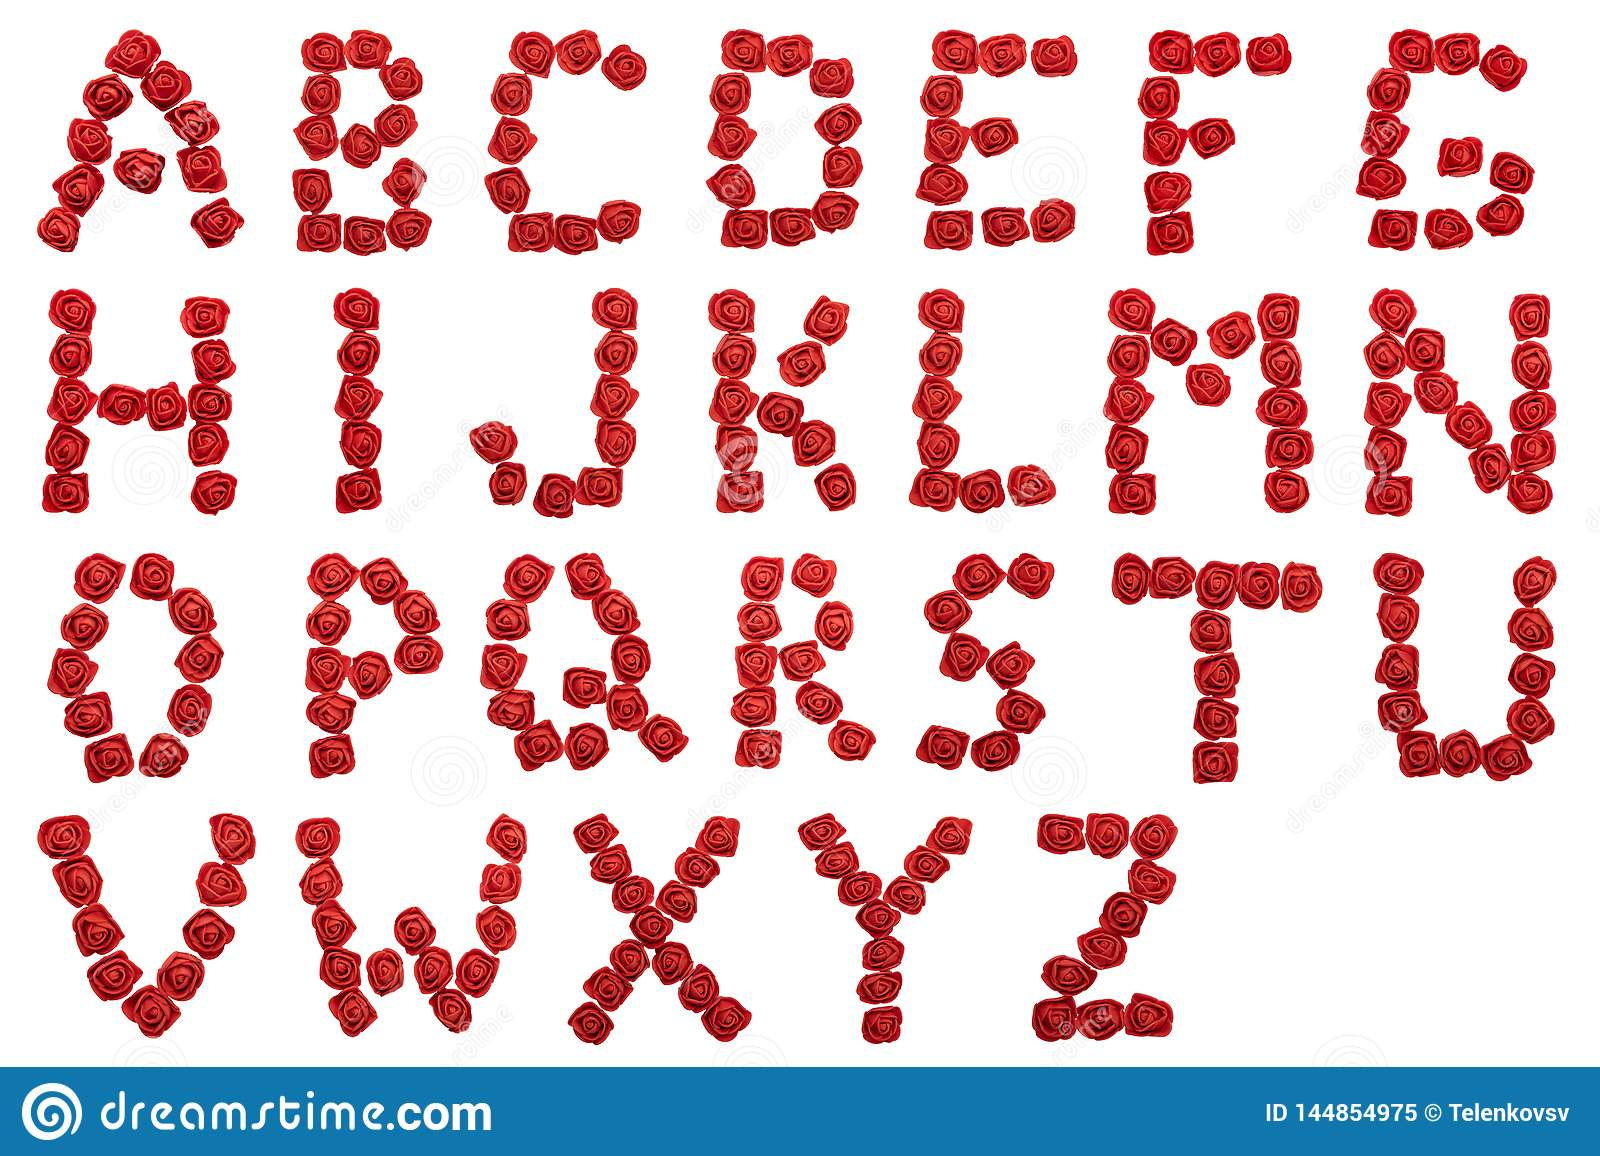 Alphabet of red roses. Letters isolated on white background. Letters from flowers